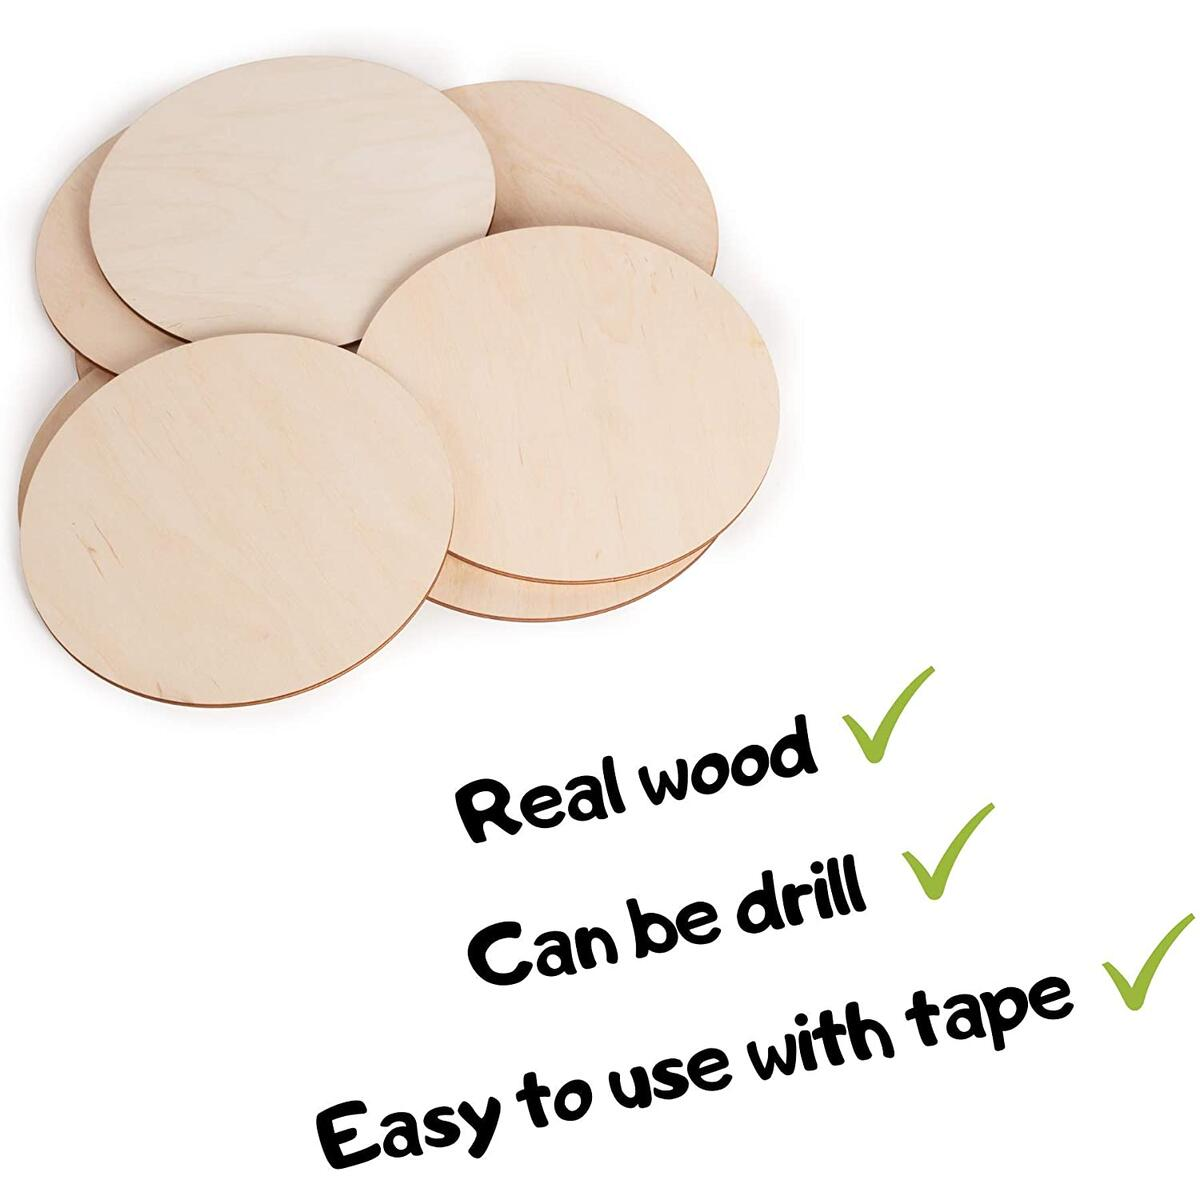 uVeans 4 Inch 10 Pack Wooden Circles - Unfinished Round Natural Wood - Unpainted Wood Slices - Cutout Wooden Discs - Plywood Circle for Art and Craft, Painting, DIY …